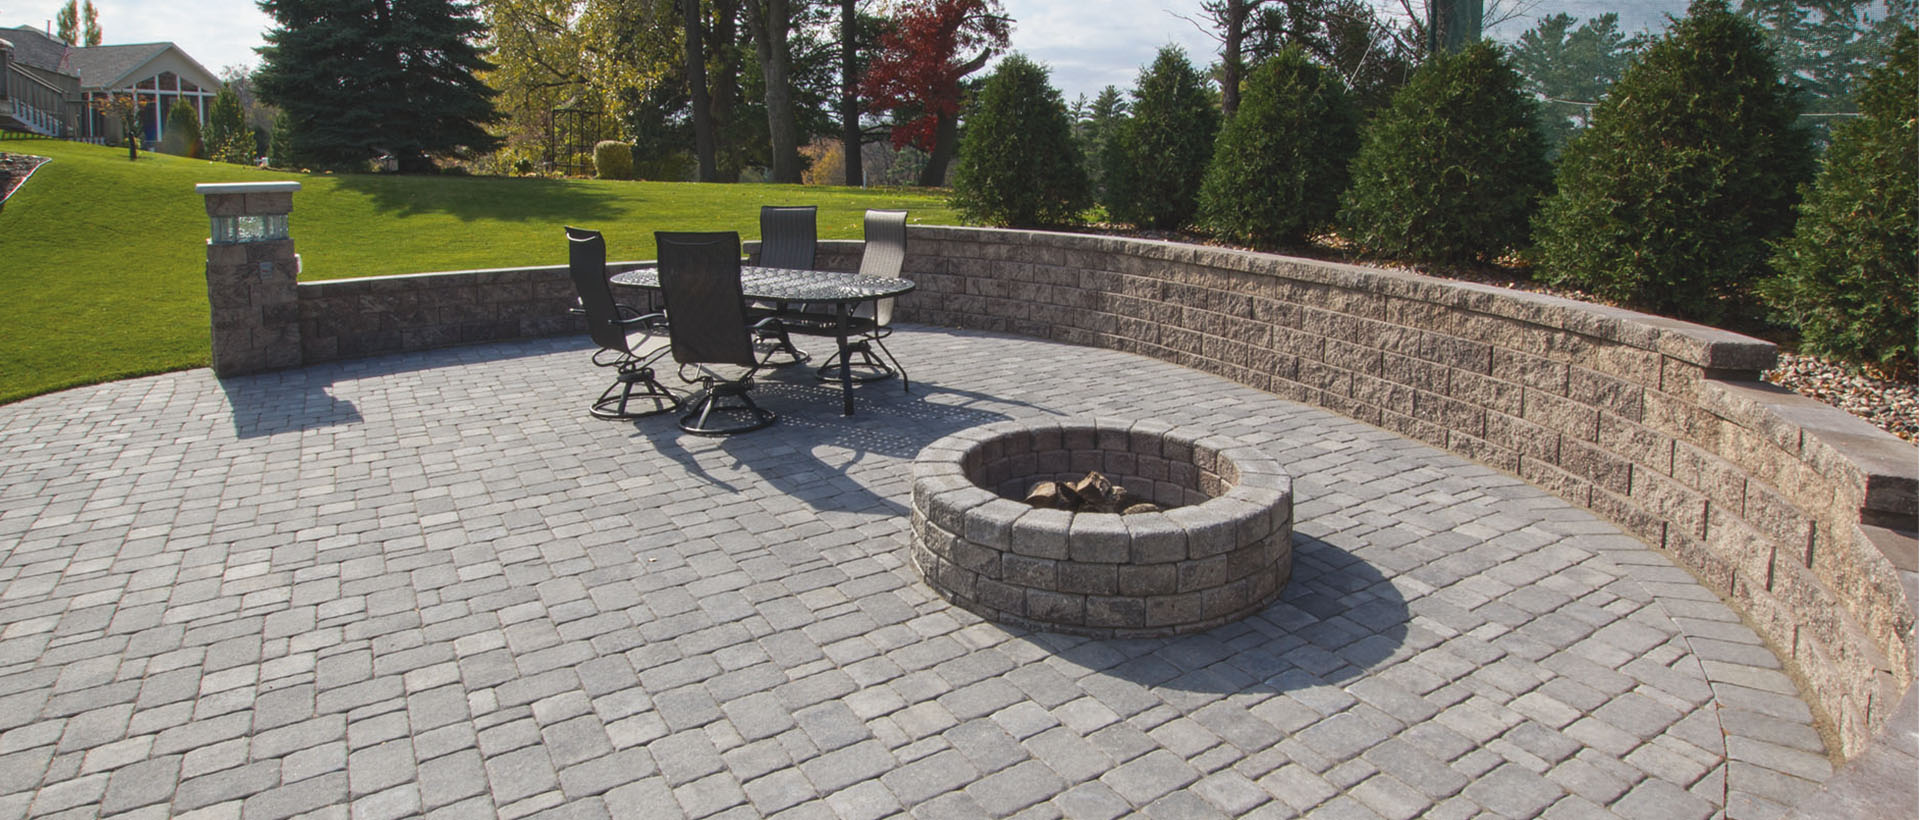 Colonial Pavers have smooth/dimpled tops, irregular edges and small auto-spacers. These popular pavers look like decades-worn cobbles and are popular for patios, paths, pool decks and vehicular applications.